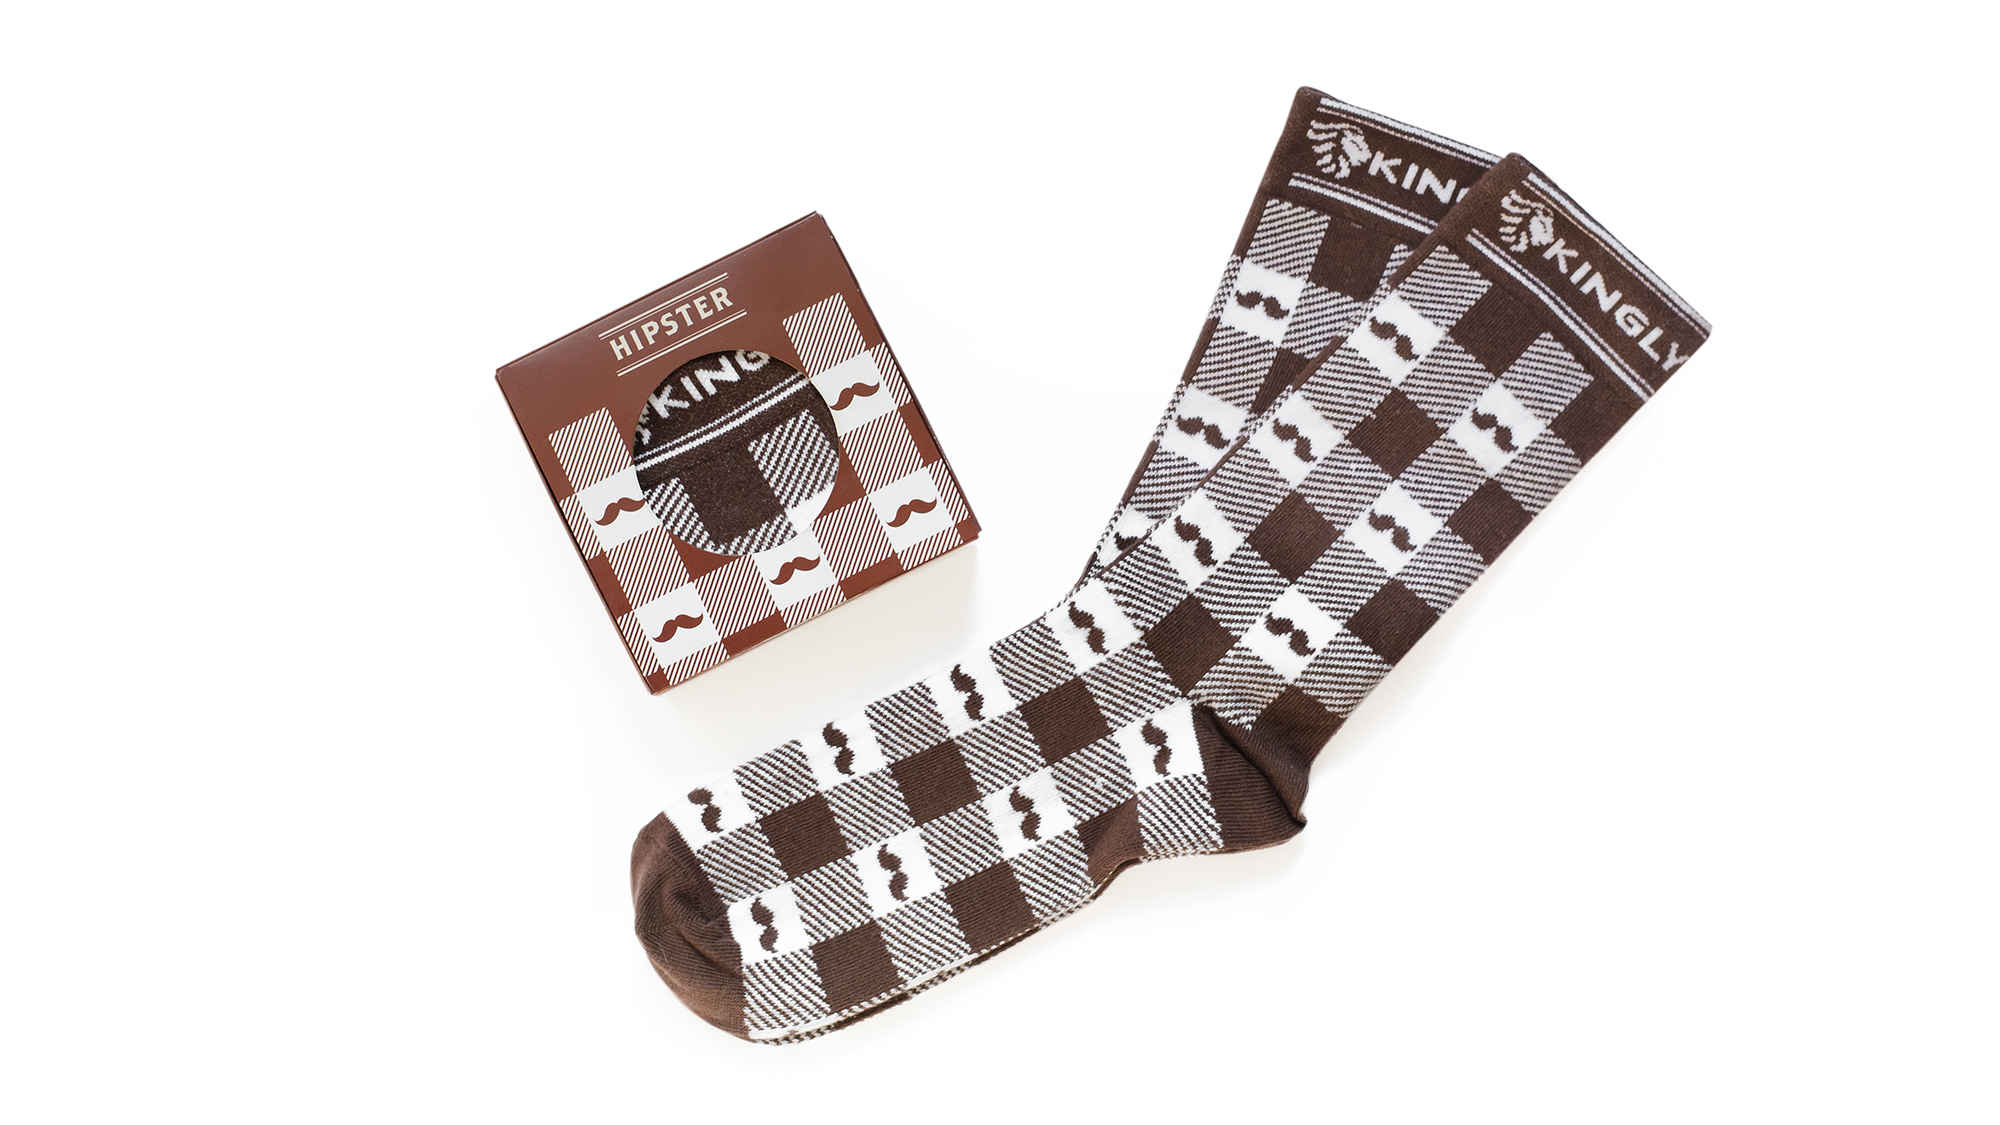 Slide-box-socks-Hipstar_1